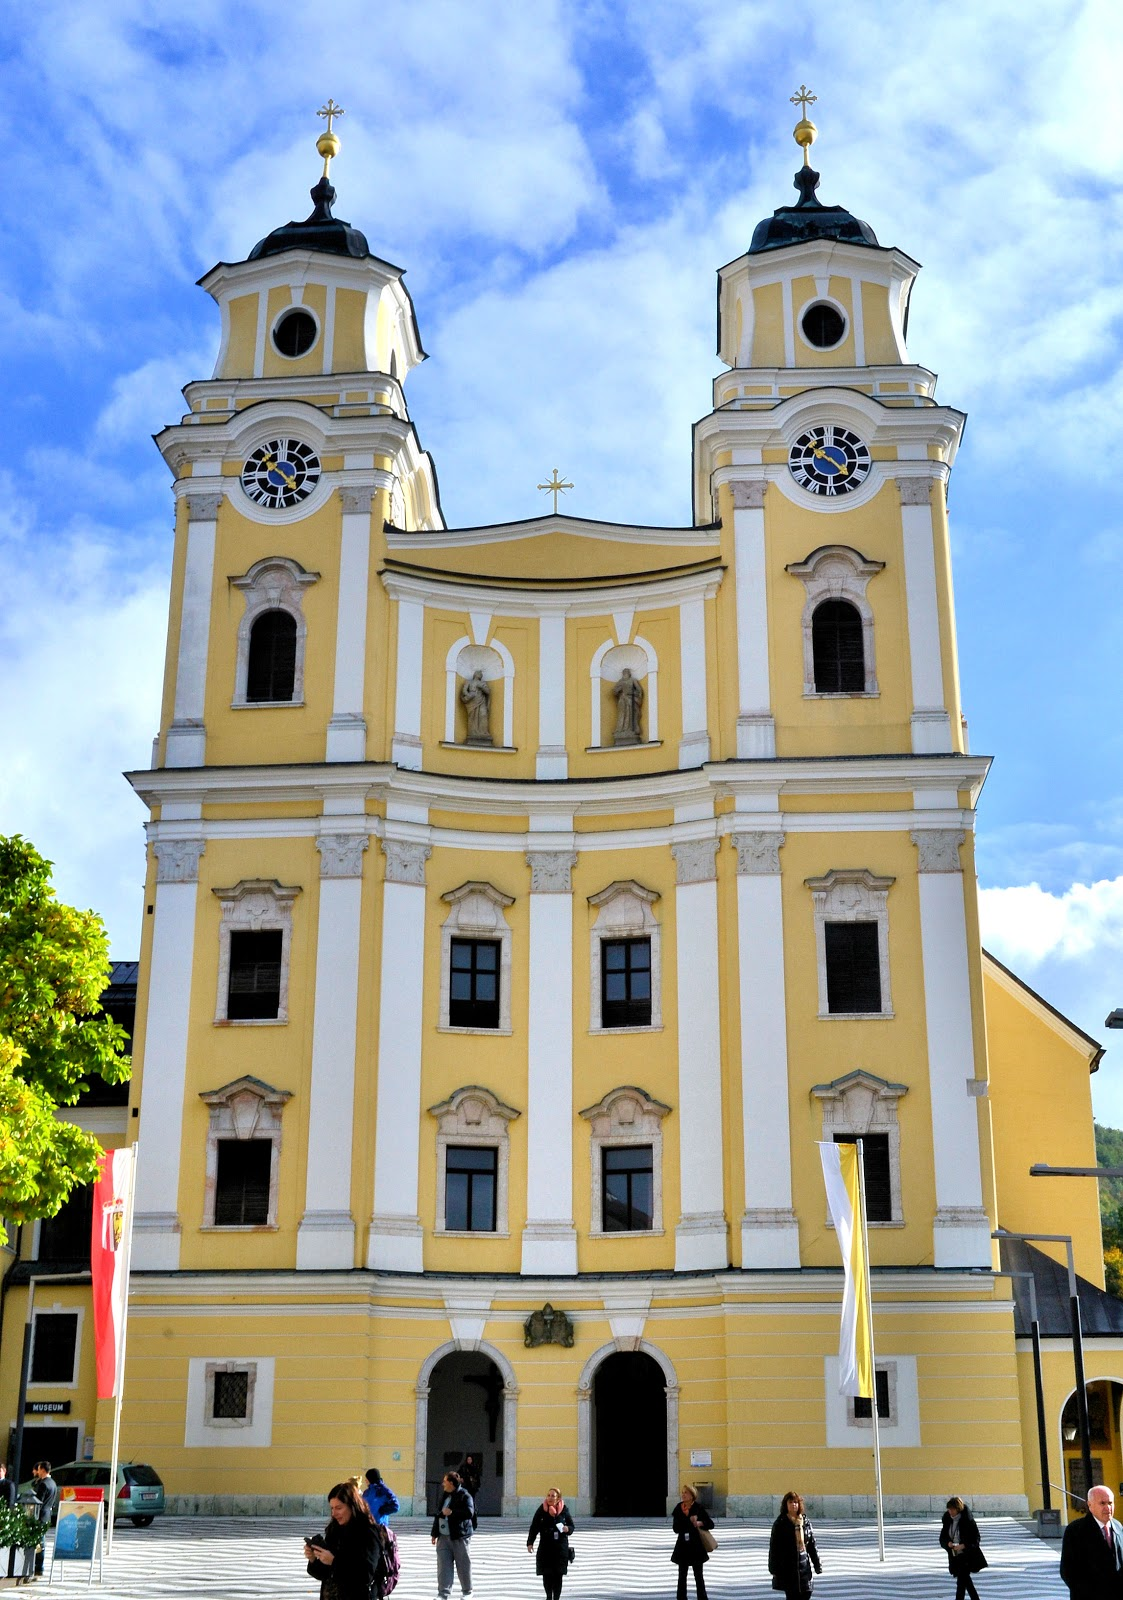 Saint Michael Church in Mondsee, Austria, was the location for the wedding scene in 'The Sound of Music.'